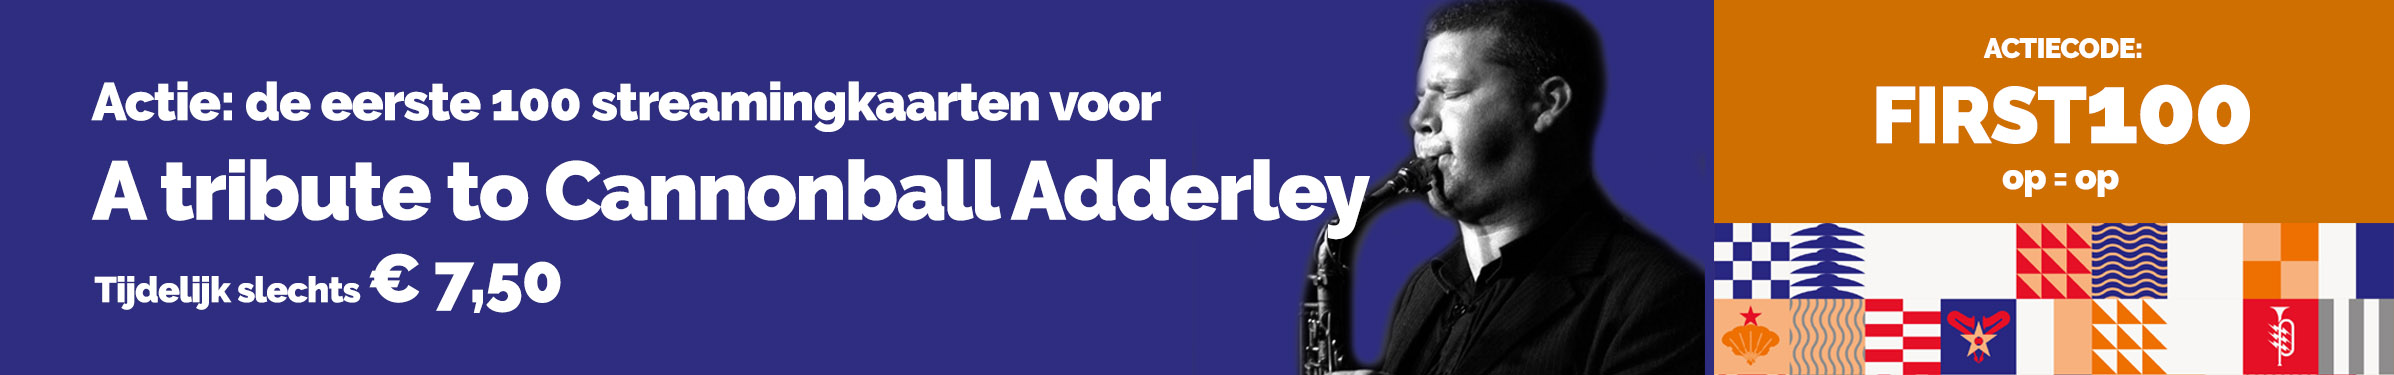 Actie cannonball adderley streaming